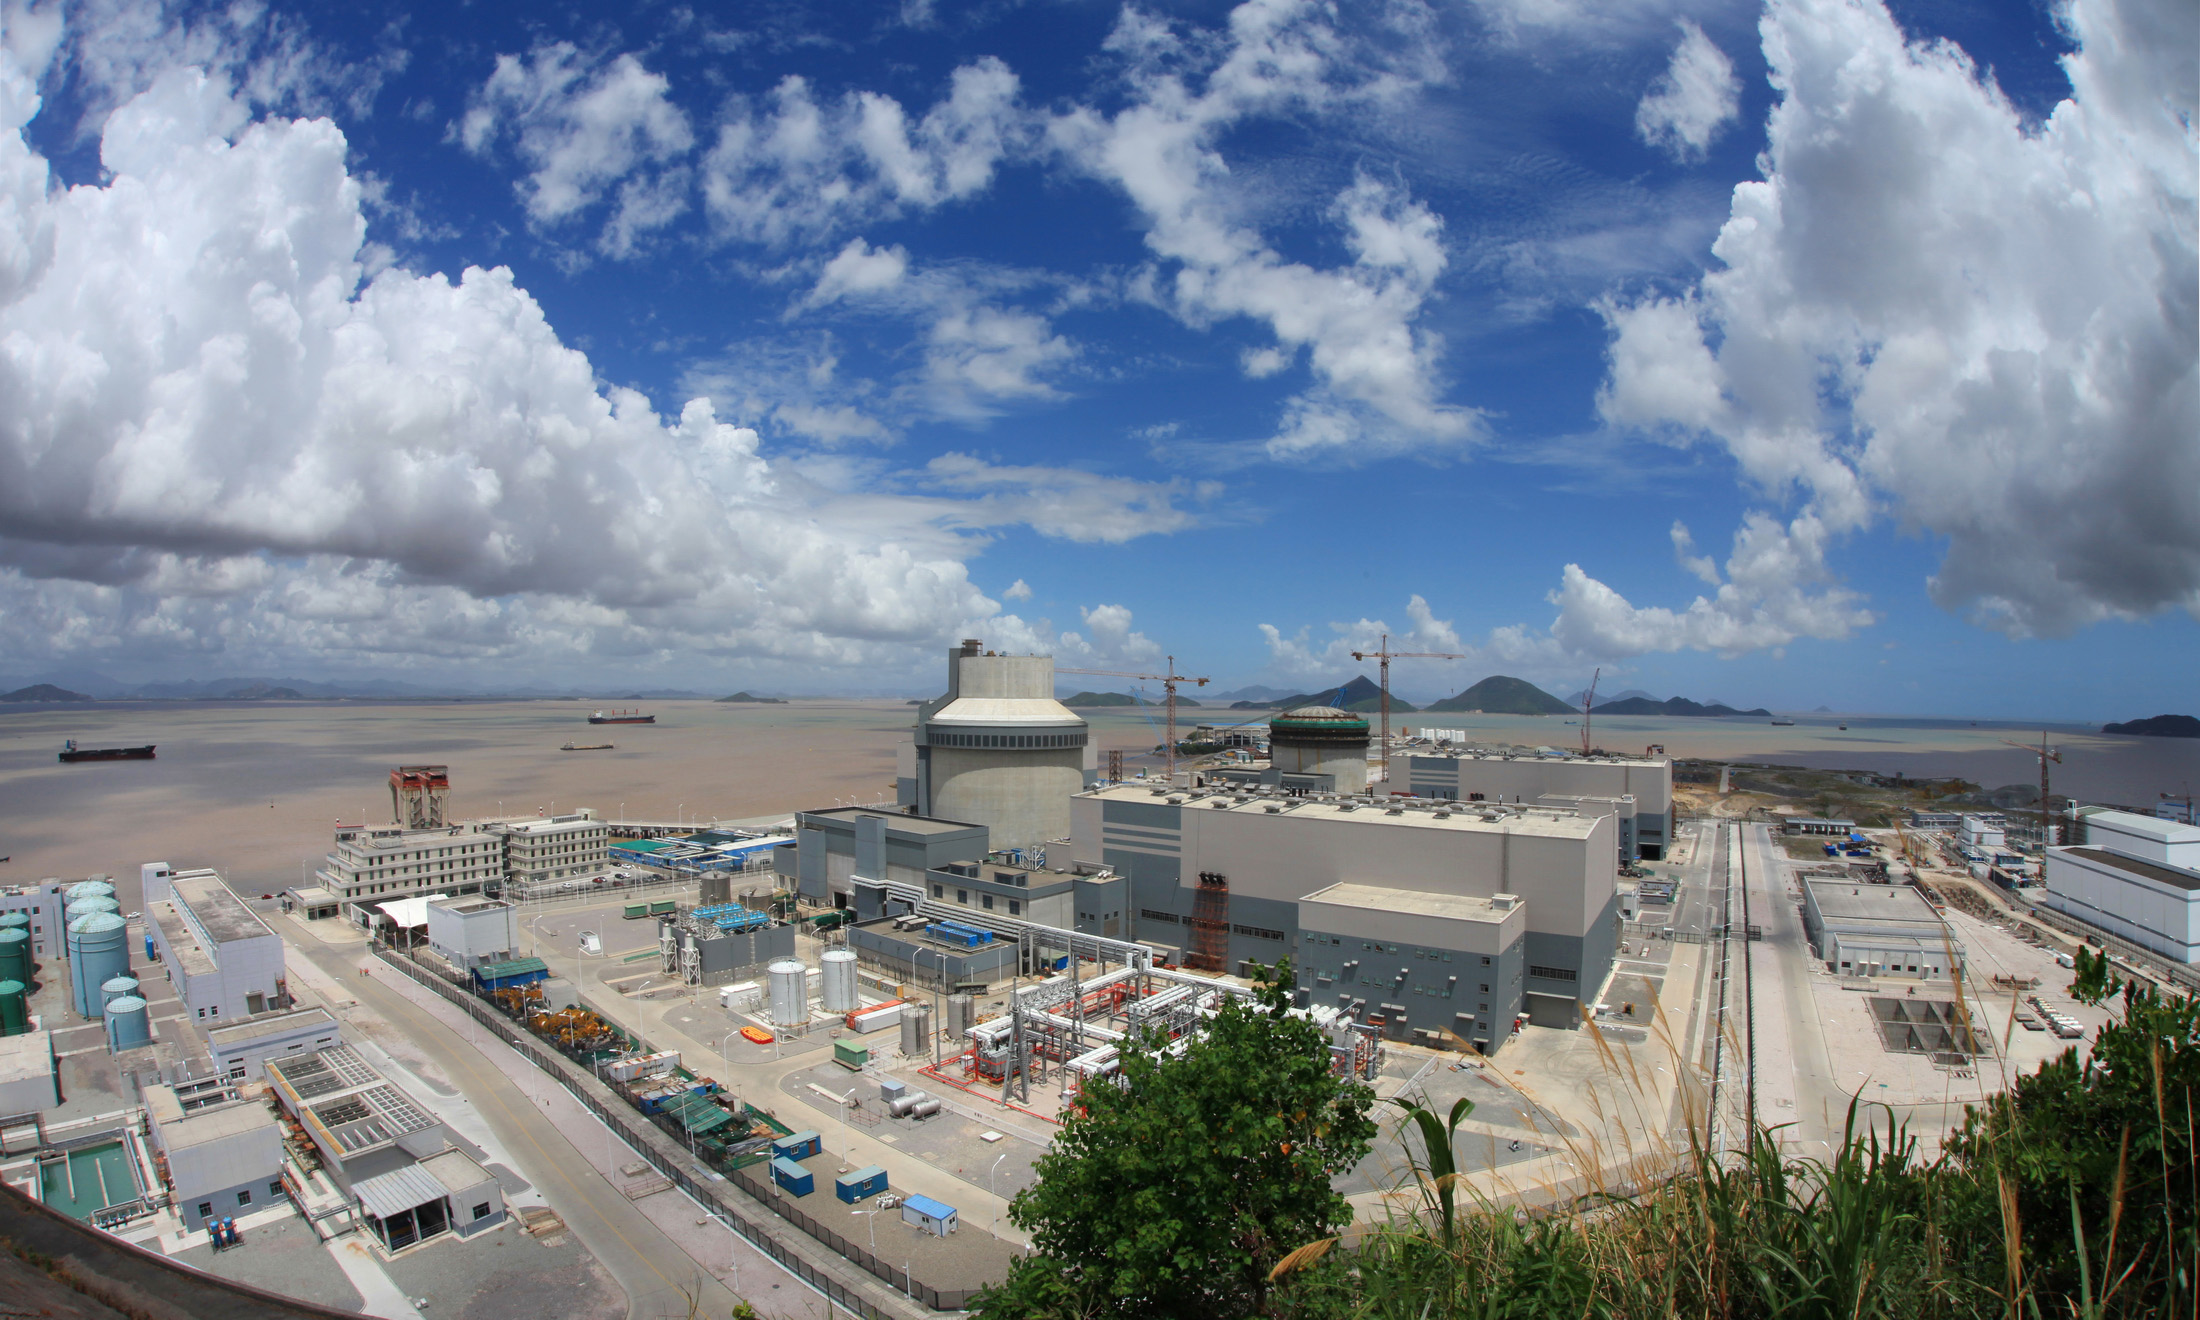 China National Nuclear Corporation is building two Westinghouse AP1000 reactors in Sanmen, supporting thousands of American jobs and helping China to generate the electricity without producing CO2.